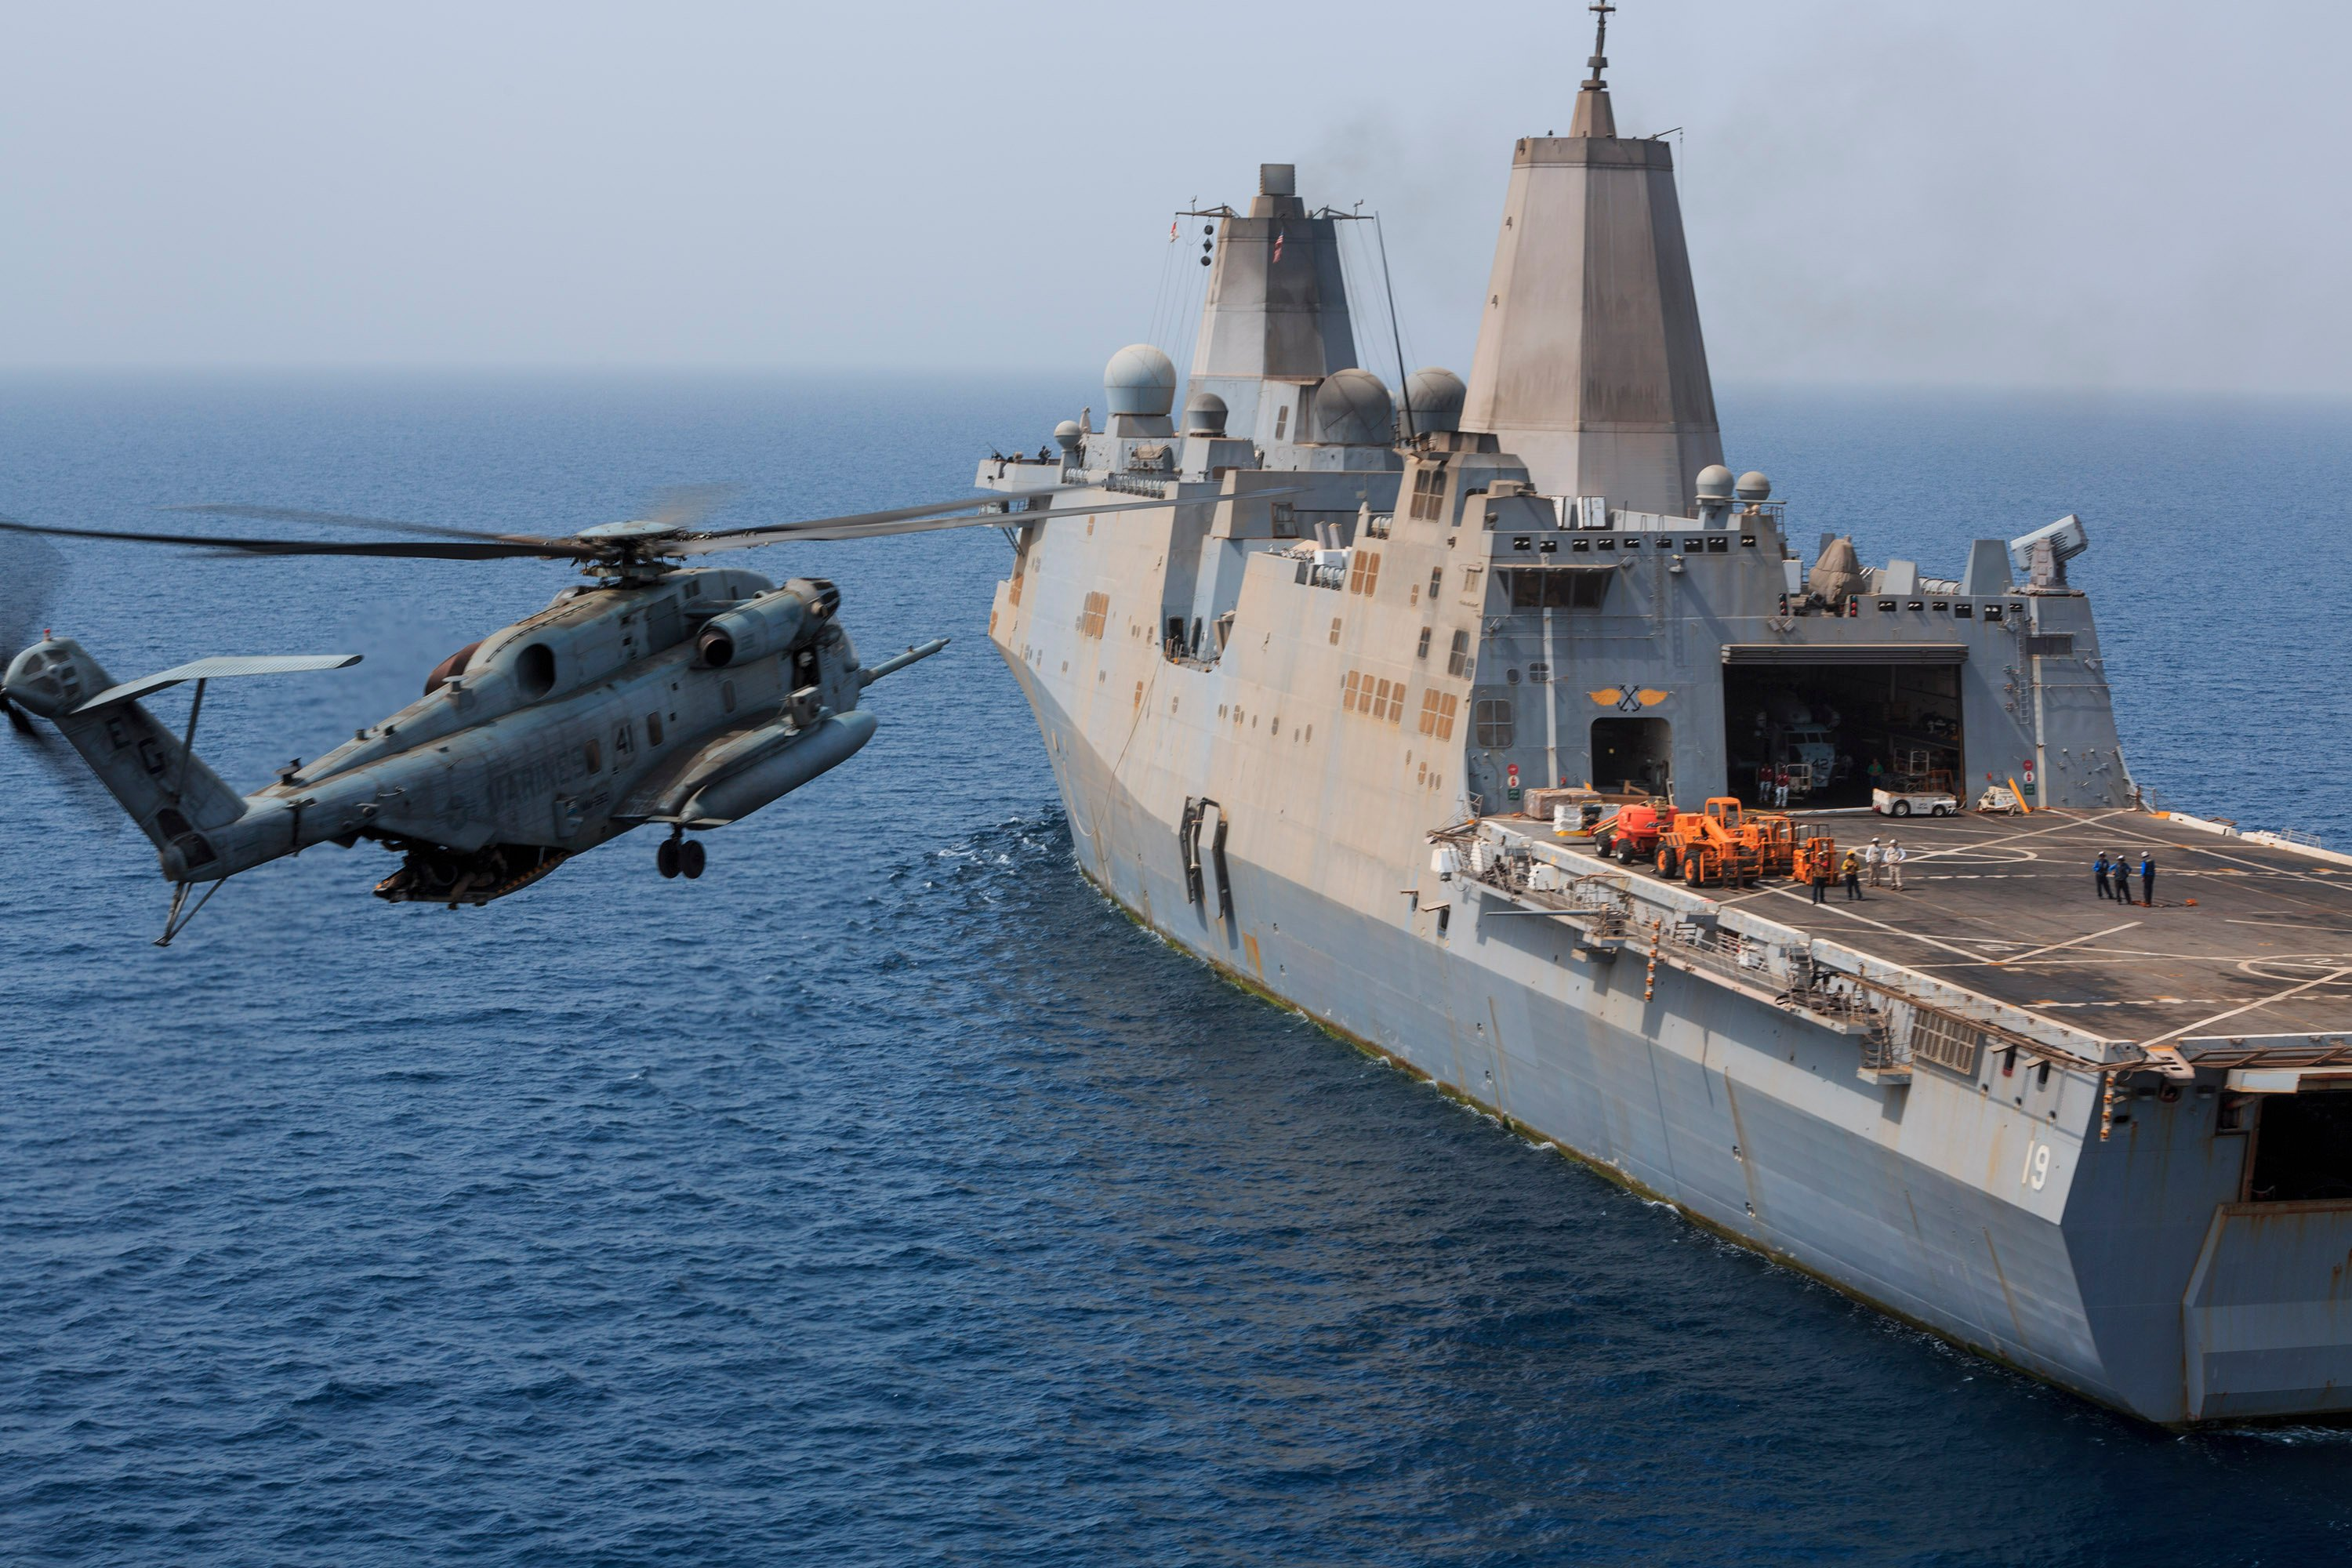 U.S. Marine Corps CH-53E Super Stallion helicopter with Marine Medium Tiltrotor Squadron (VMM) 263 (Reinforced), 22nd Marine Expeditionary Unit (MEU), prepares to land aboard the amphibious transport dock ship USS the Mesa Verde (LPD-19) on Aug. 4, 2014. US Navy Photo